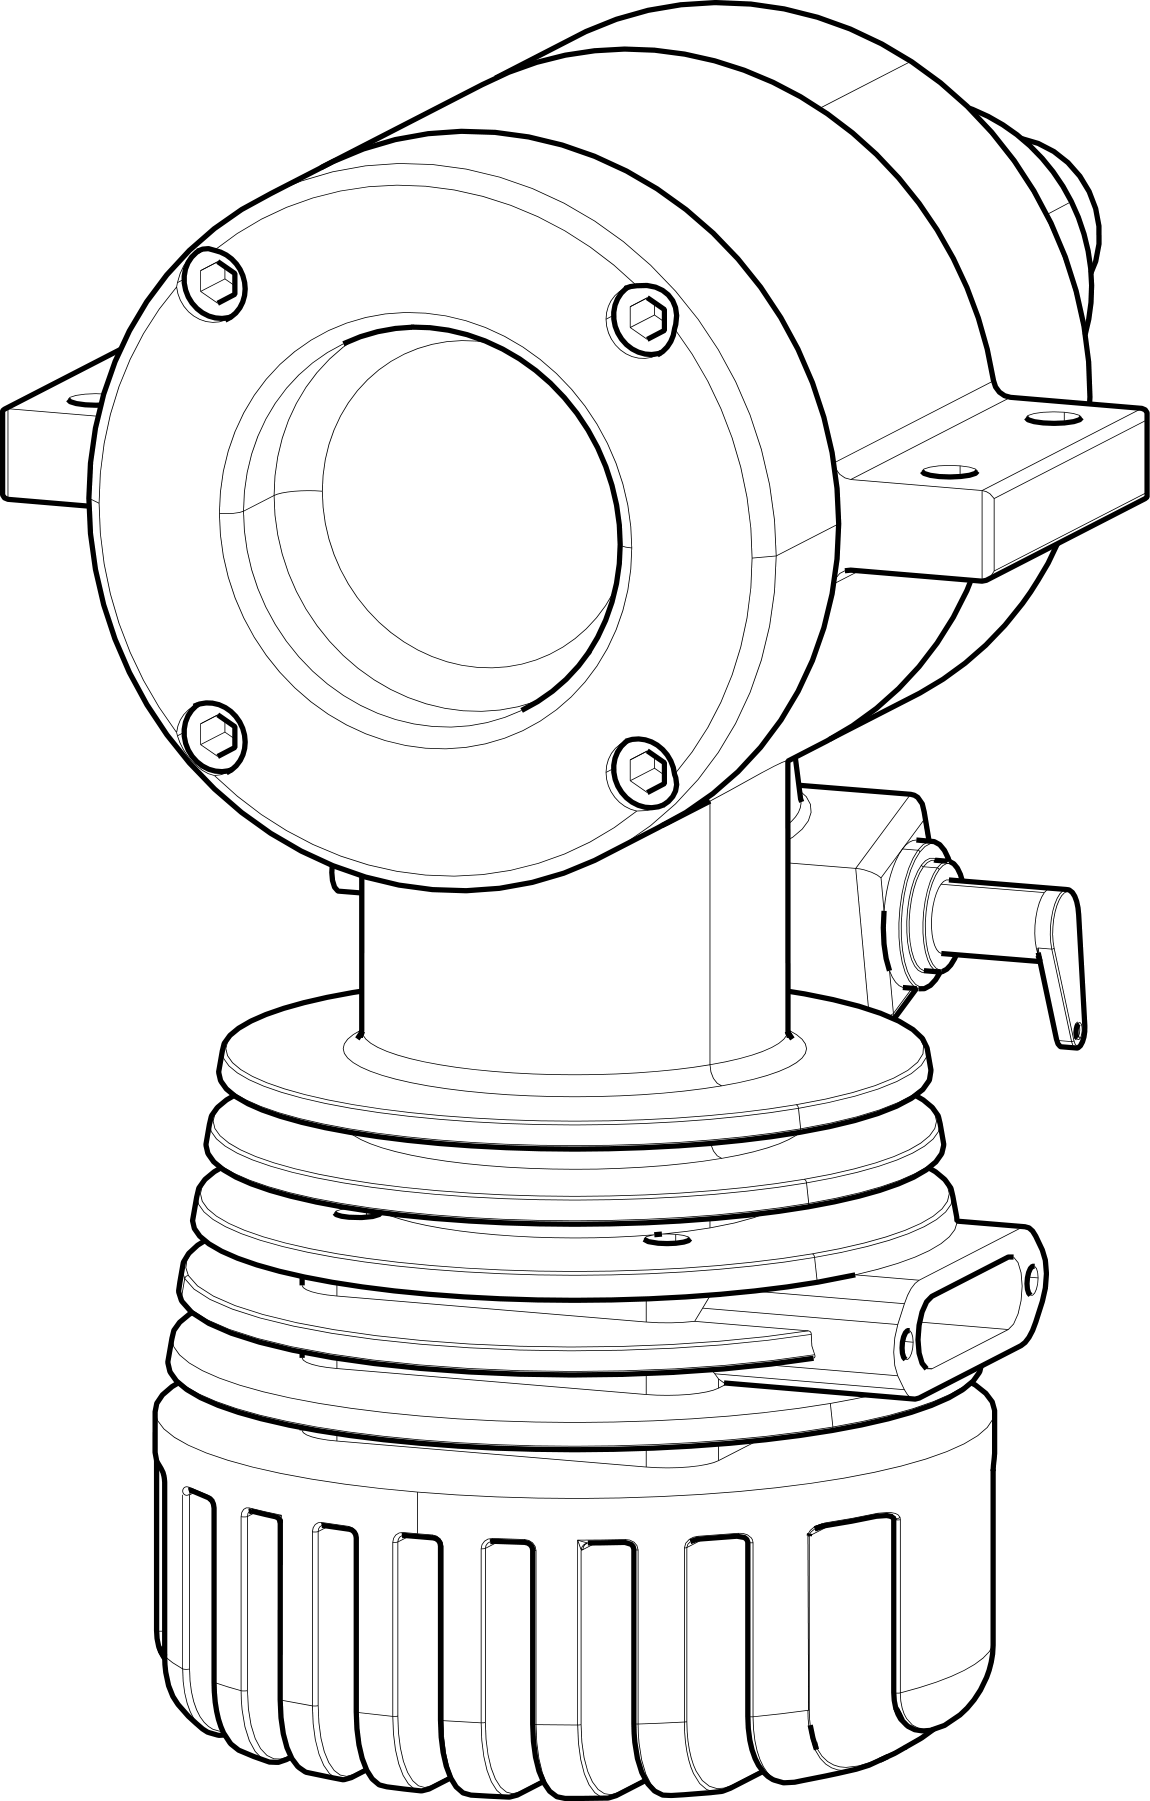 2D render of 3D model in Canvas Envision showing Thick/THin LInes